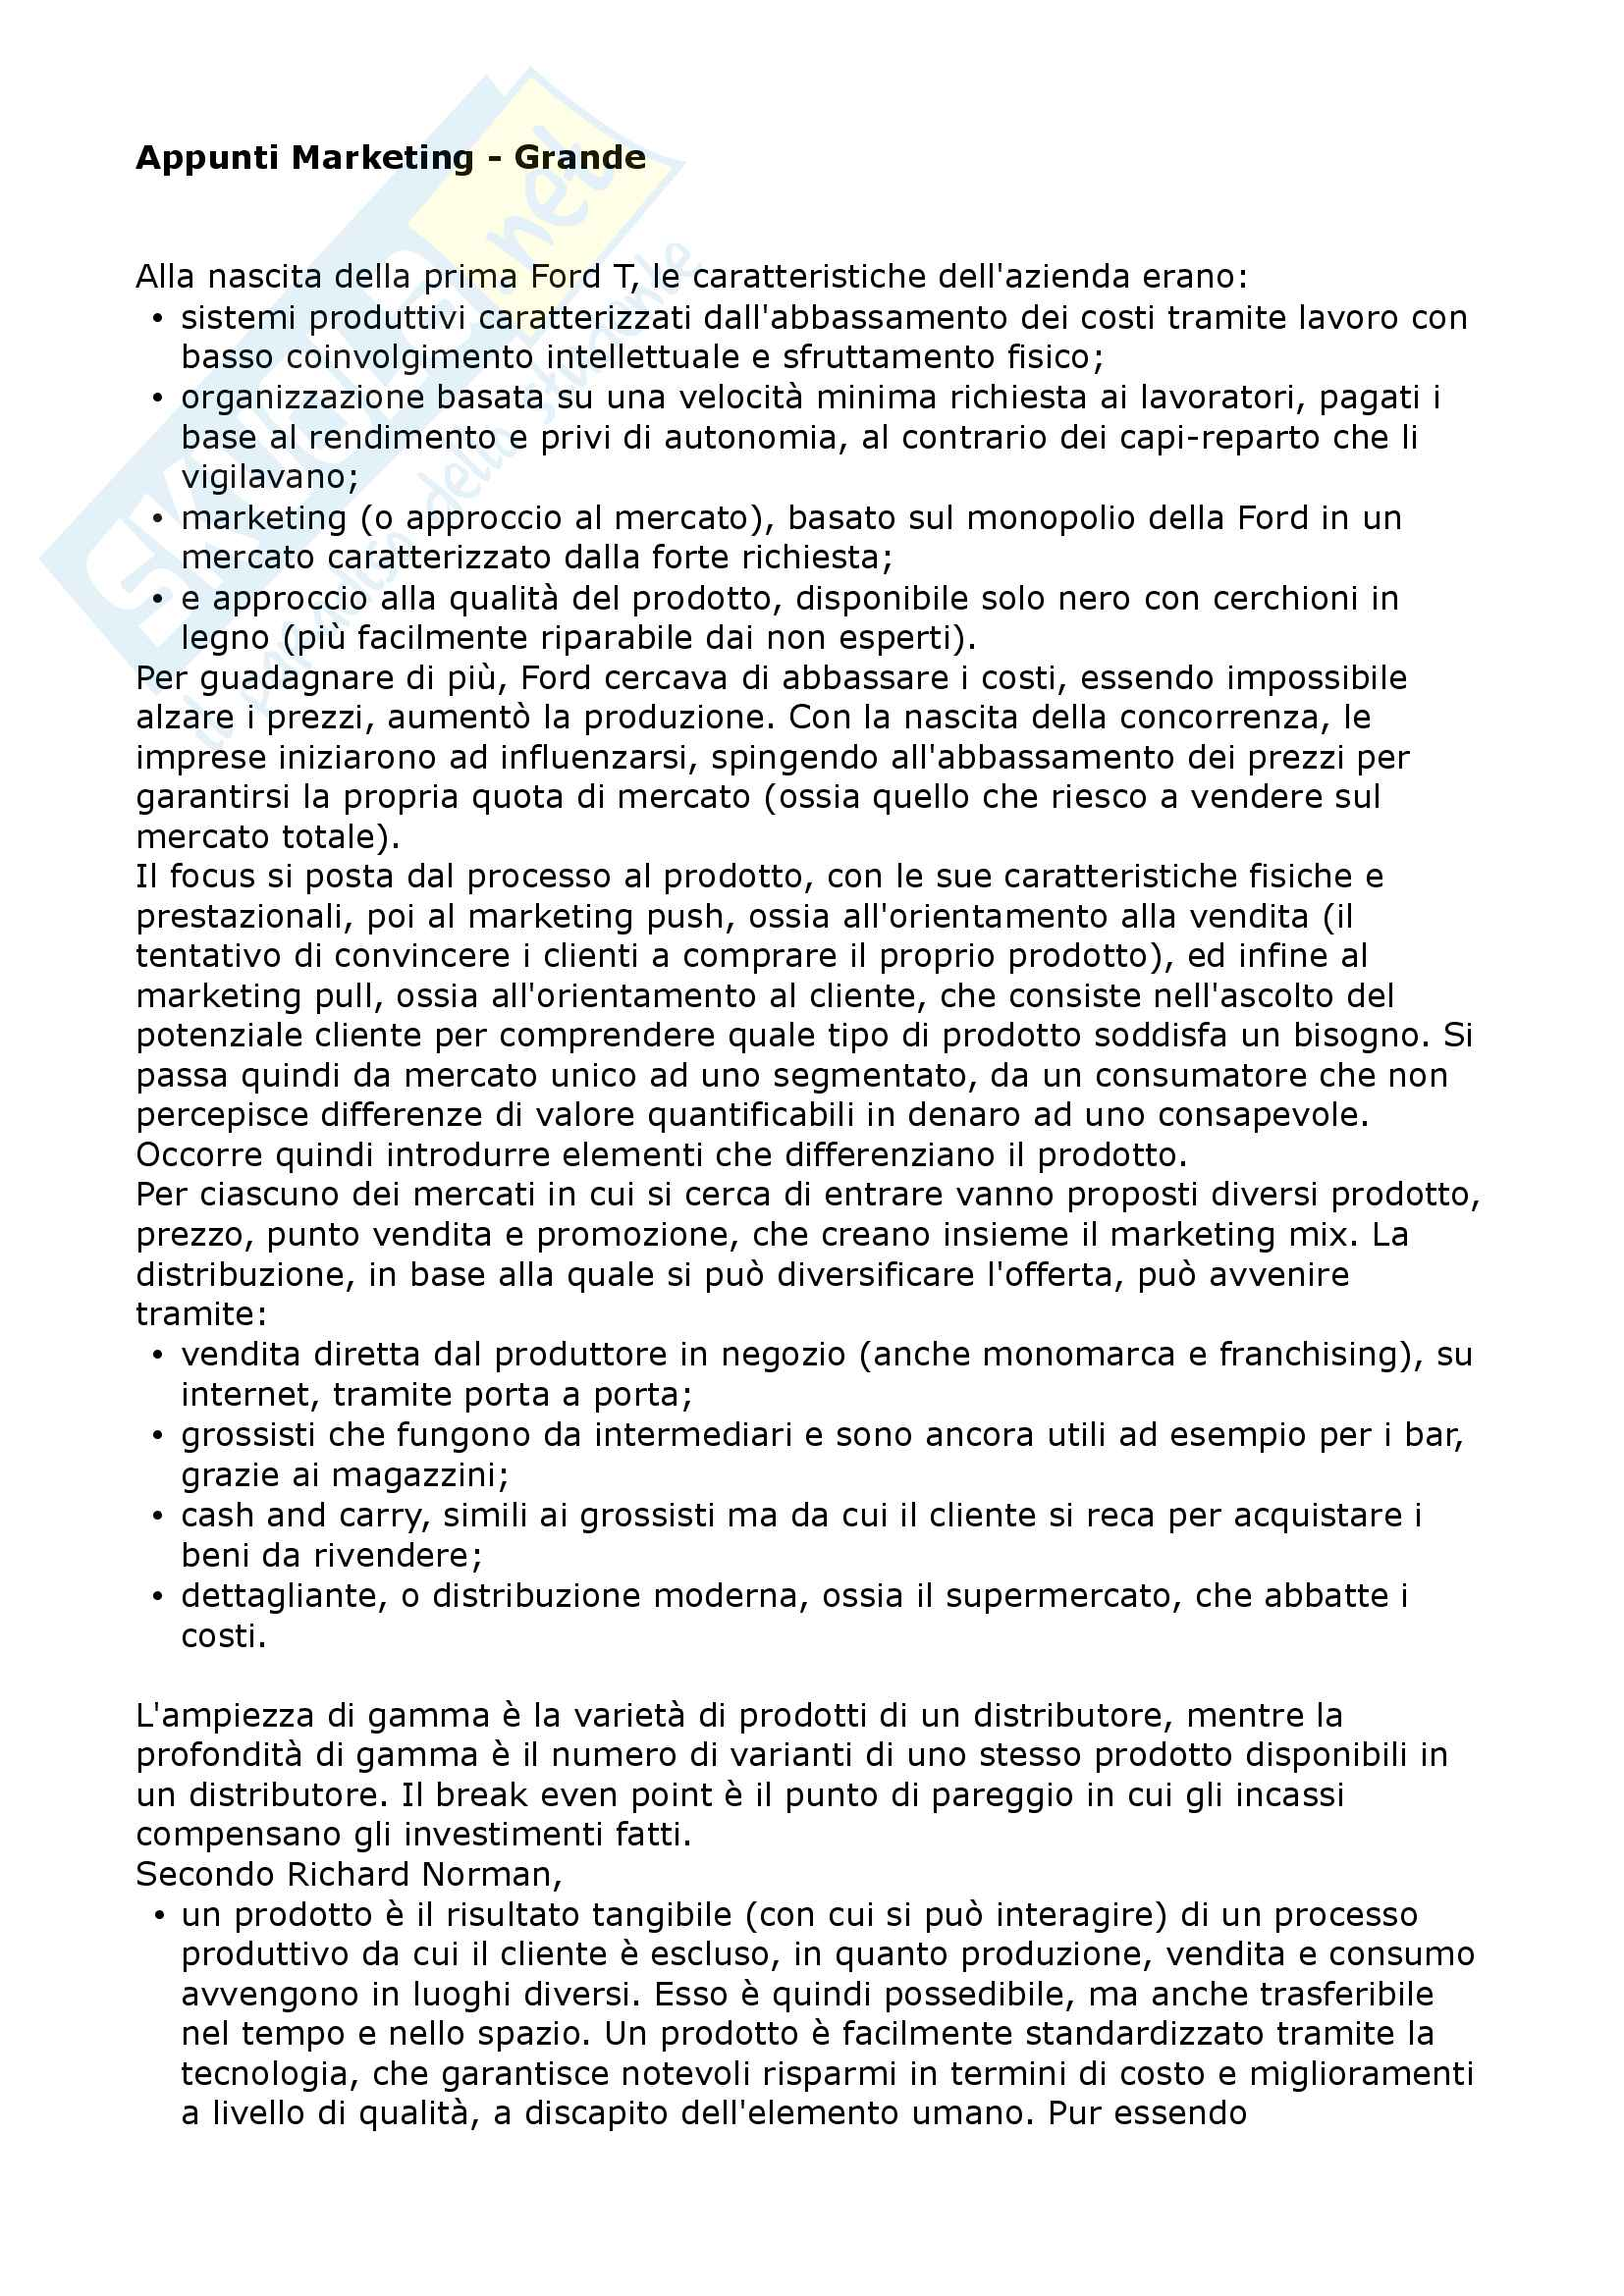 Appunti di Marketing Avanzato (prof Grande)